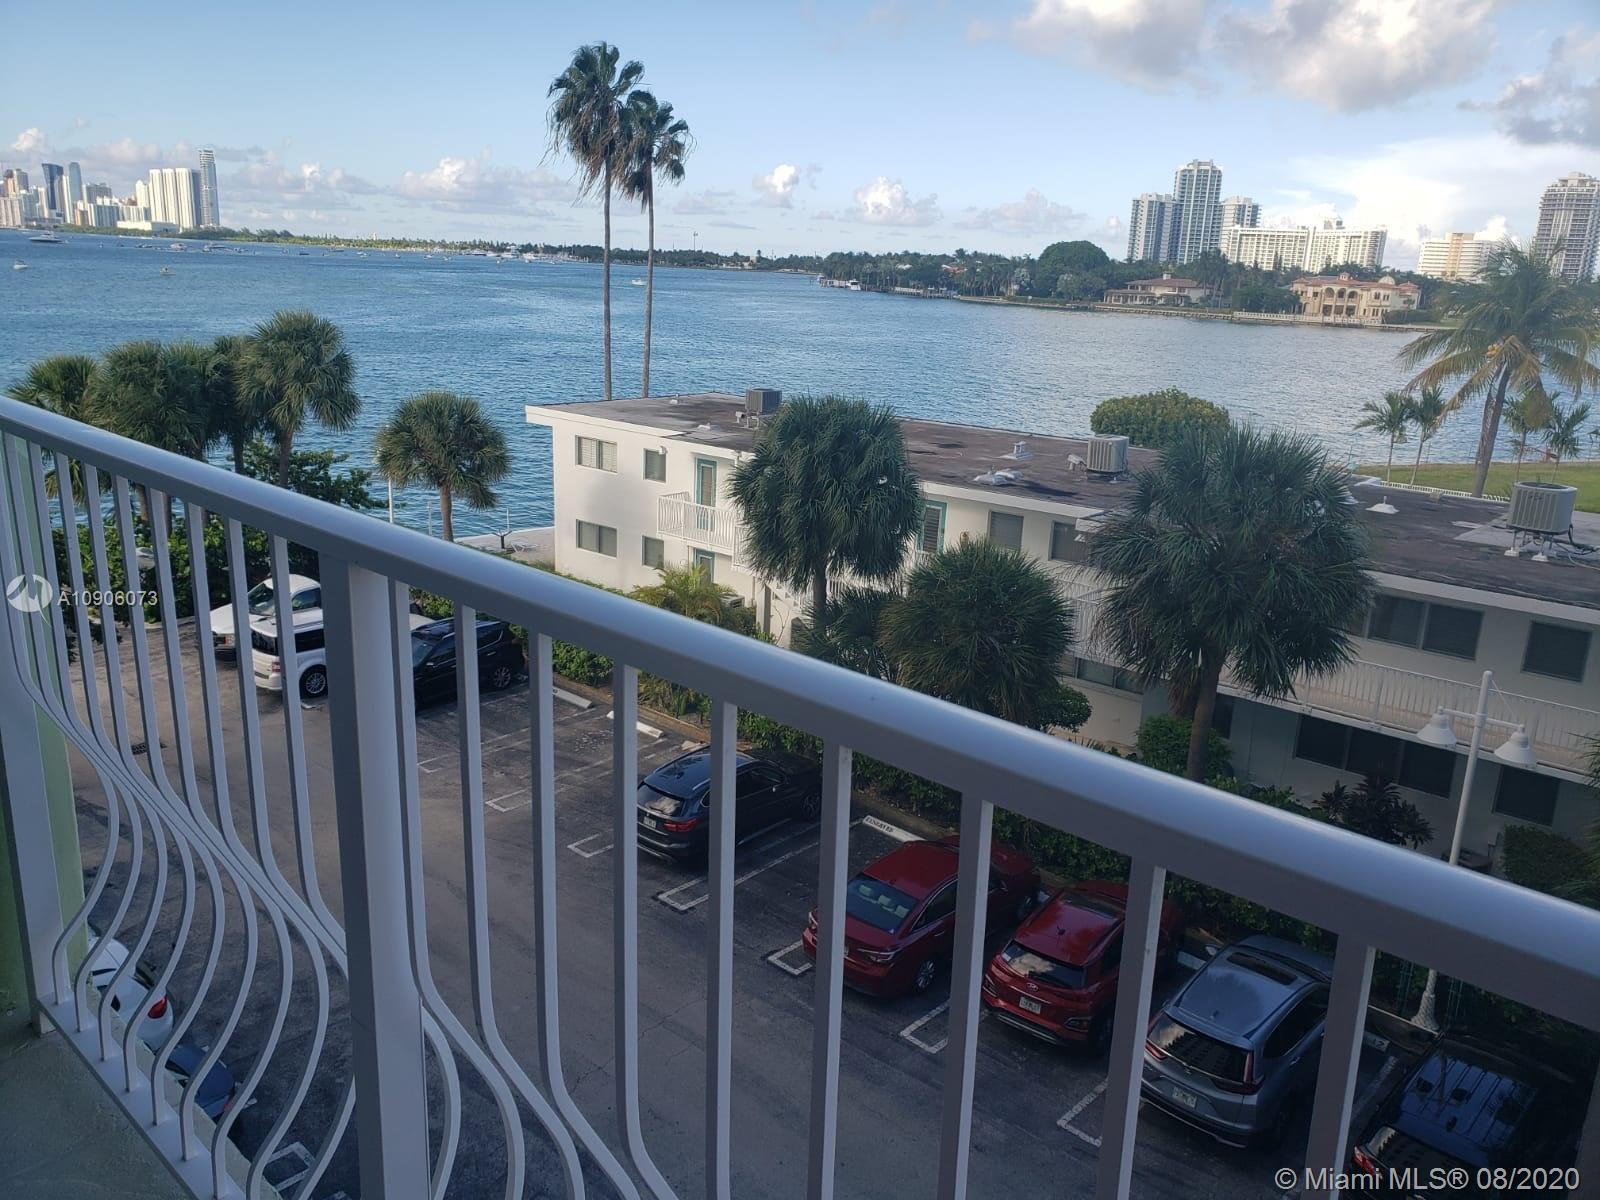 Live in beautiful Bay Harbor Islands! One bedroom with a water view and a large kitchen!! It's perfect for an investor or to live in this beautiful building. The maintenance includes internet, cable, and much more! Don't miss this opportunity!